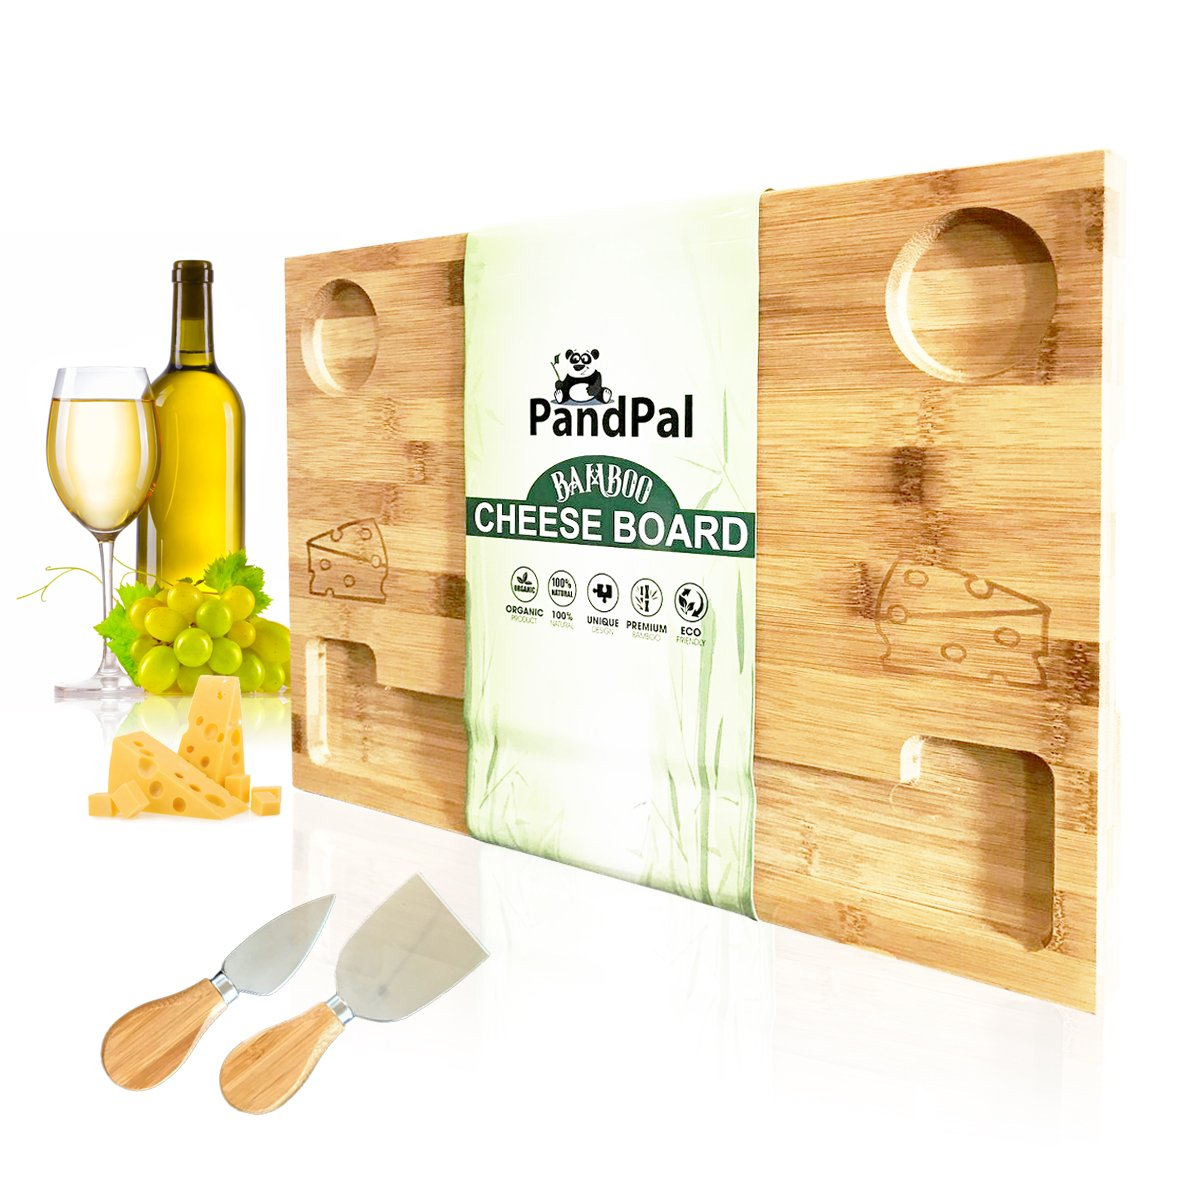 Cheesy Smile Bamboo Cheese Board Serving Tray - Bonus Stainless Steel Knives, EXTRA LARGE [16x11x1] Wooden Cutting Board Charcuterie Platter for Wine, Cracker, Brie, Meat, Dip, Chip by PandPal